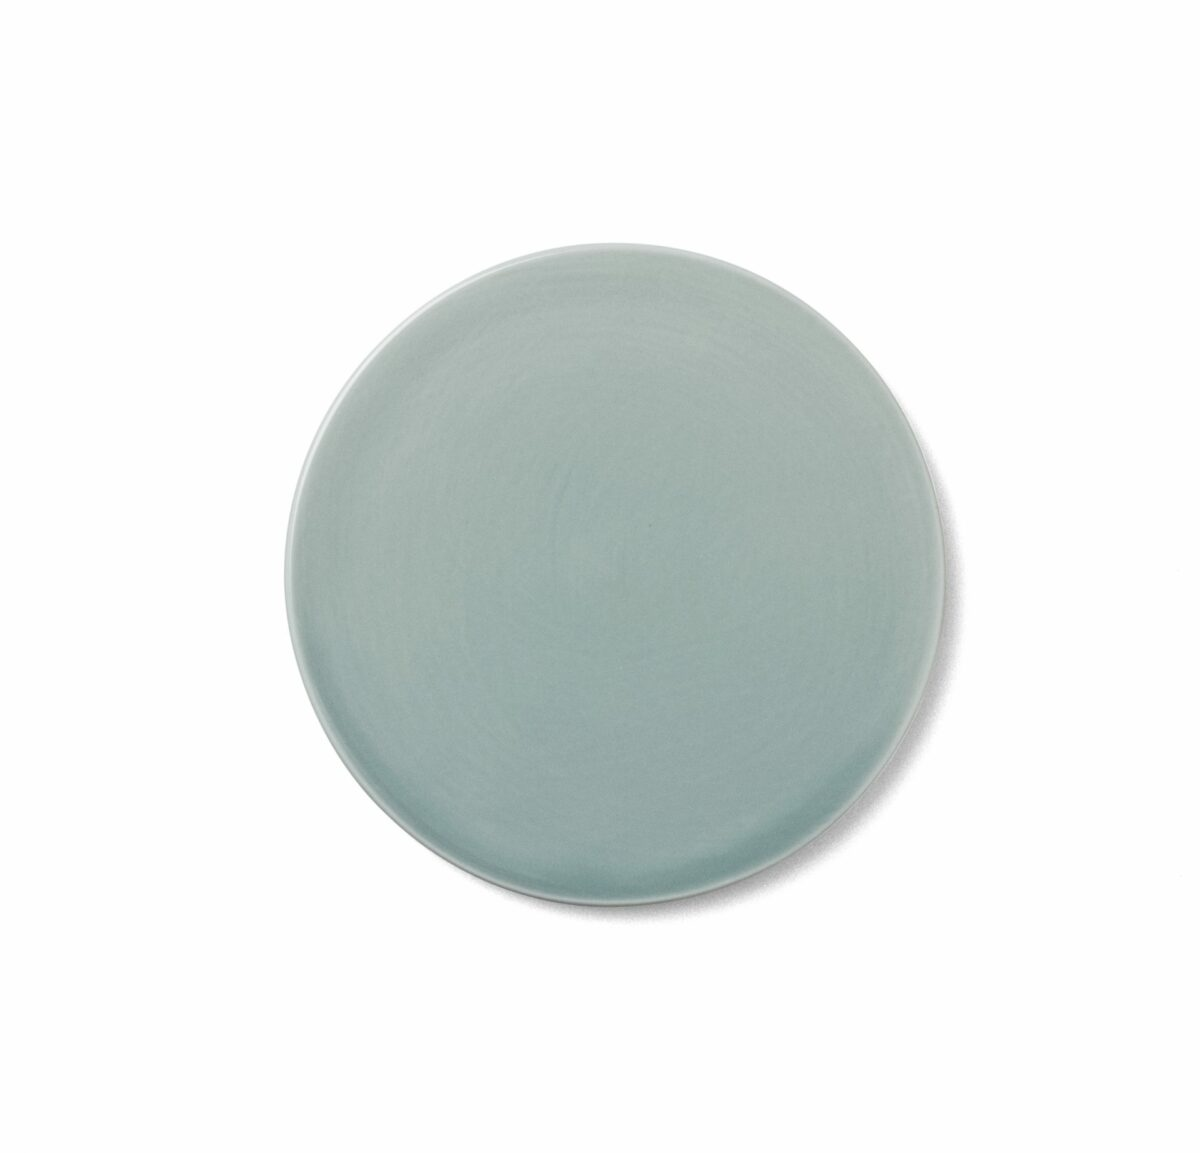 2011410 New Norm Plate Lid O135 cm Cool Green Norm 02 1